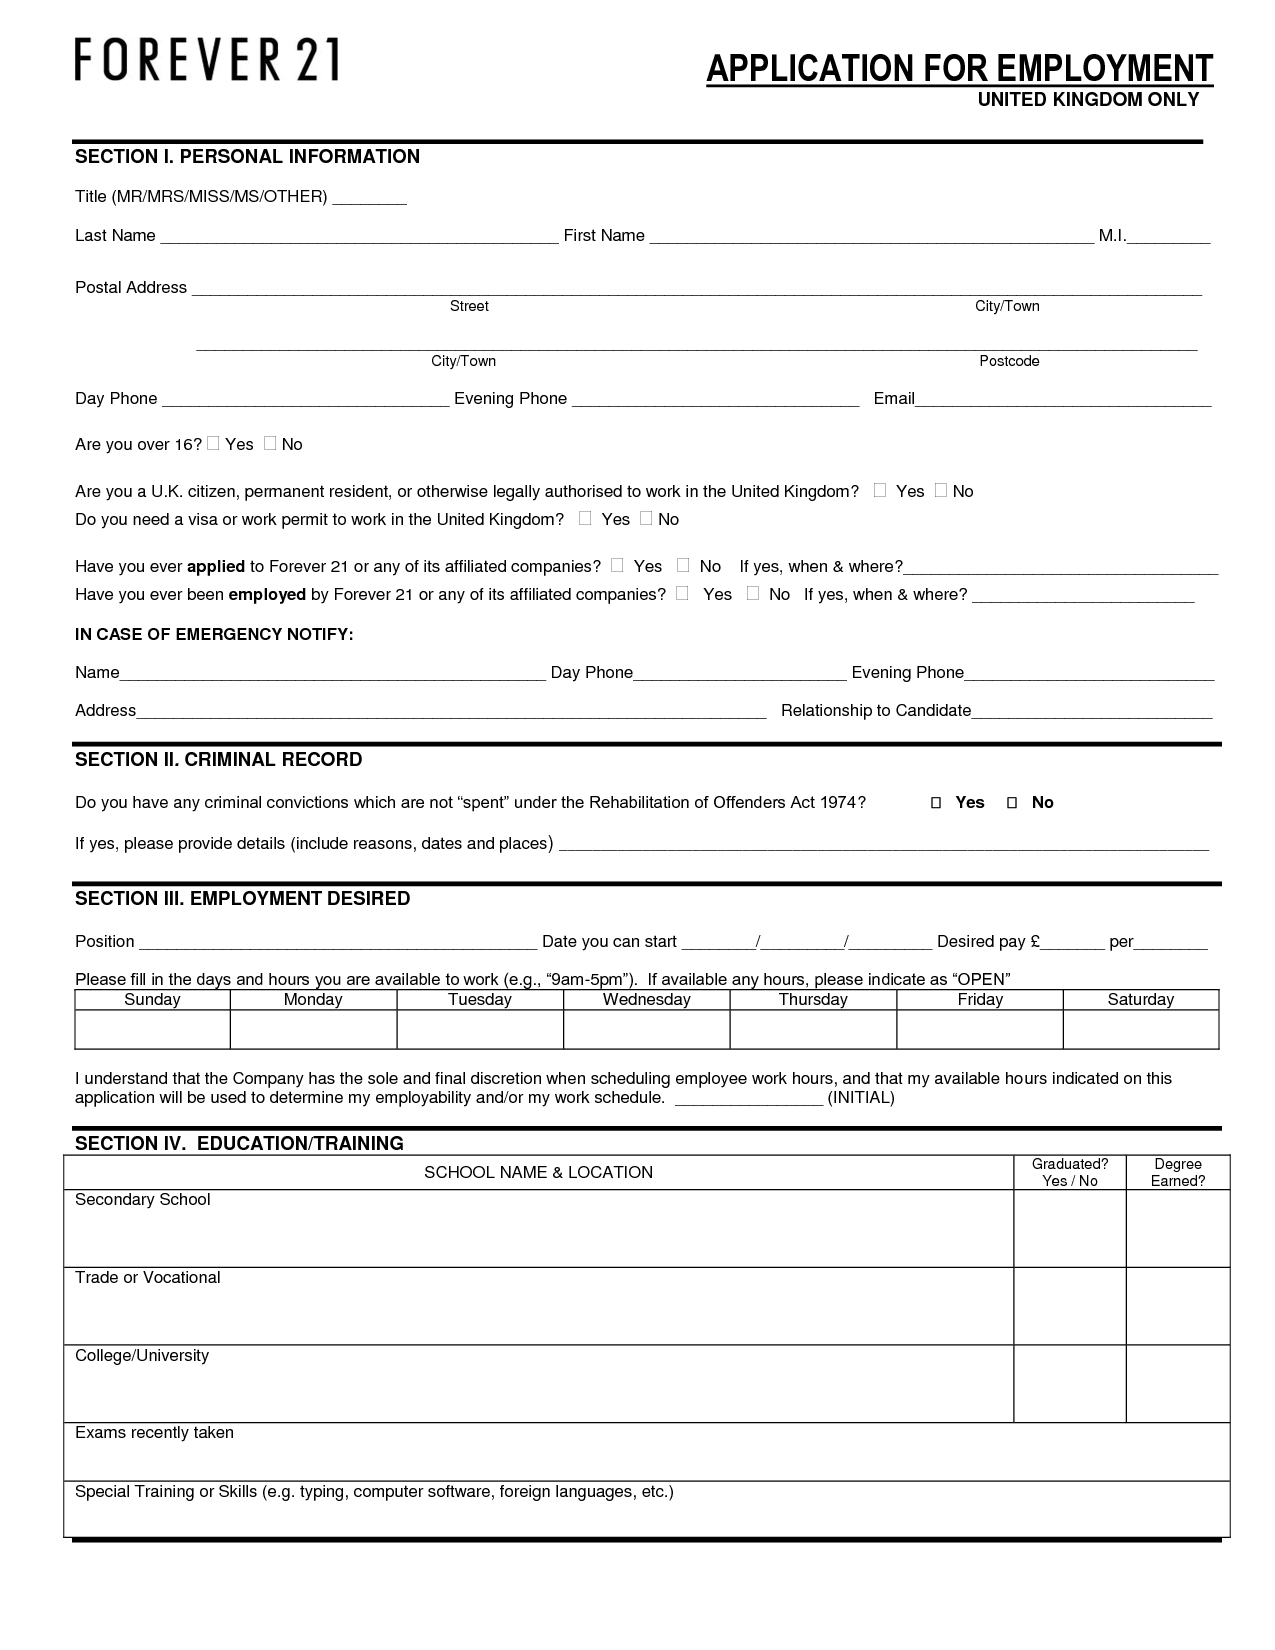 forever 21 application | Forever 21 Job Application Form | Teaching ...